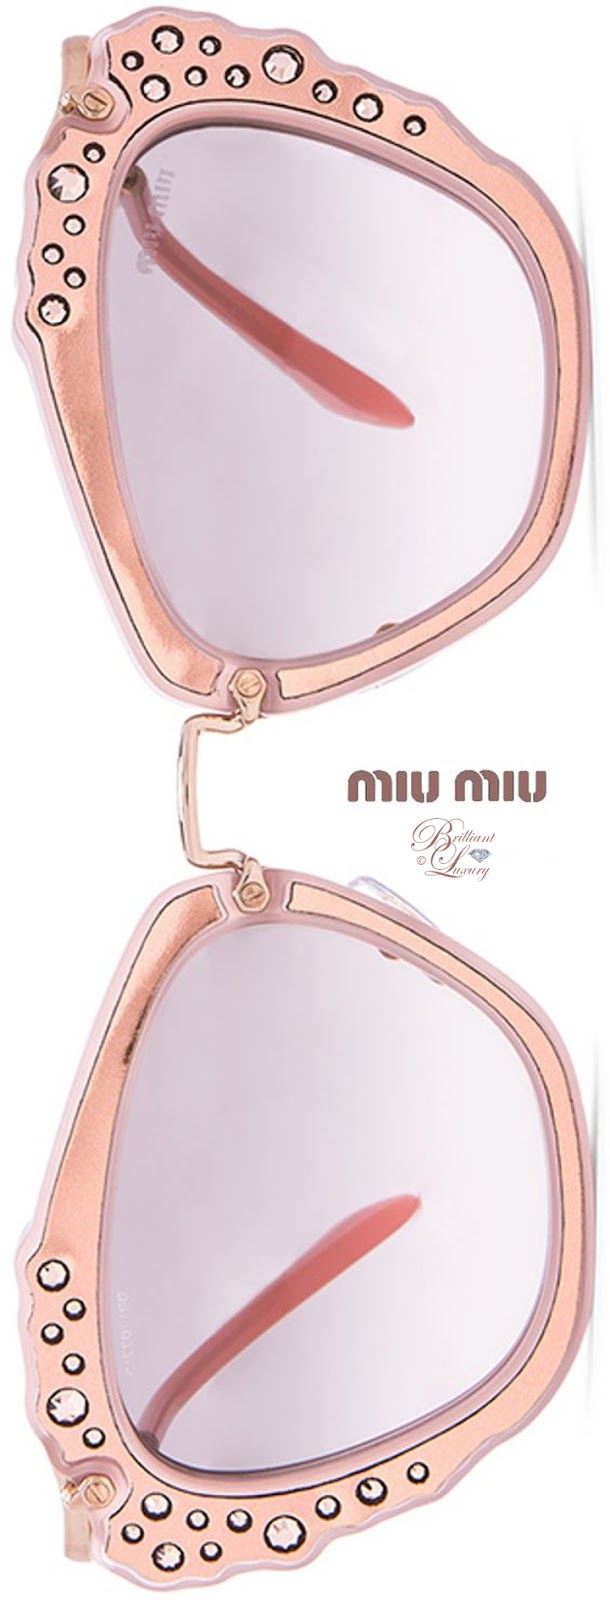 Brilliant Luxury ♦ Miu Miu Embellished Cat Eye Sunglasses